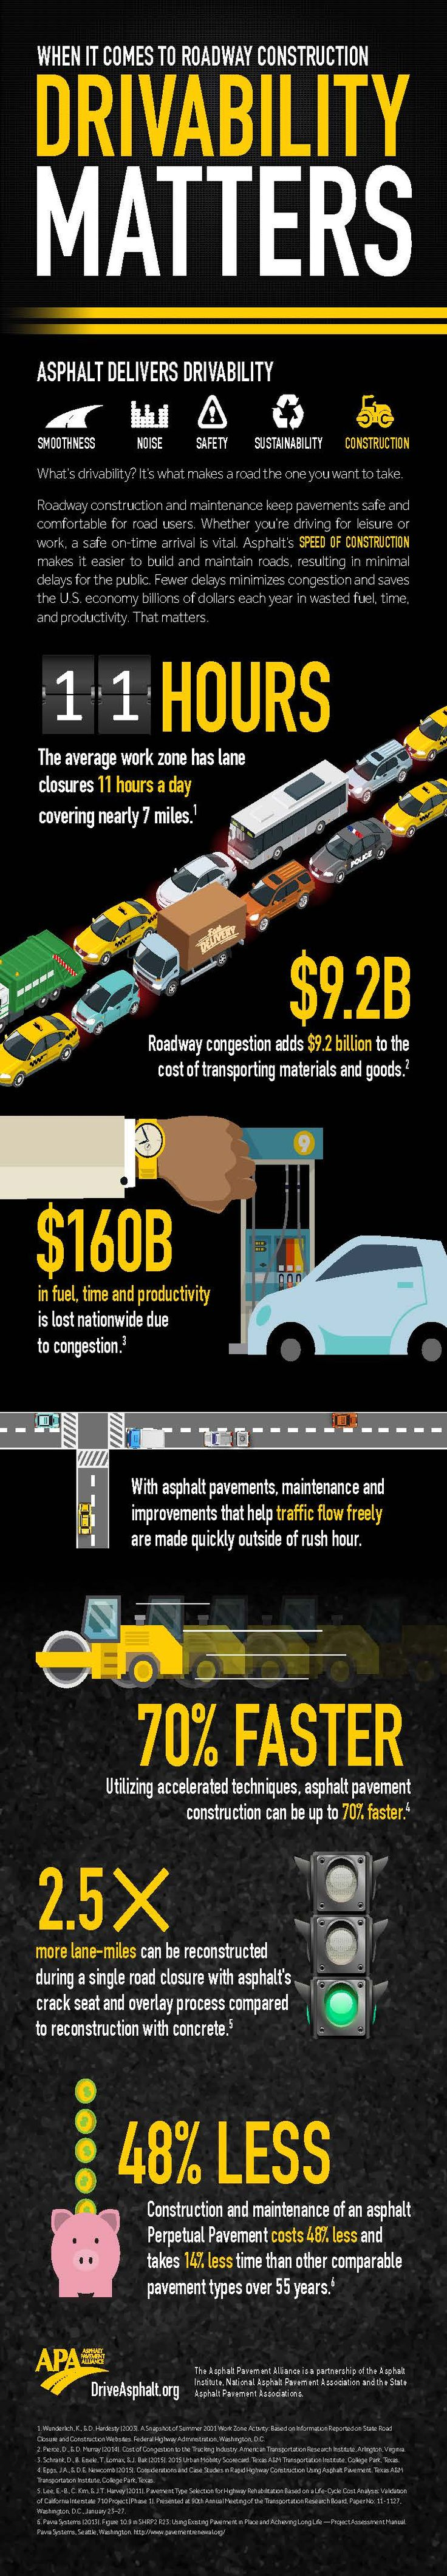 27 best infographics images on pinterest info graphics when it comes to roadway construction drivability matters colourmoves